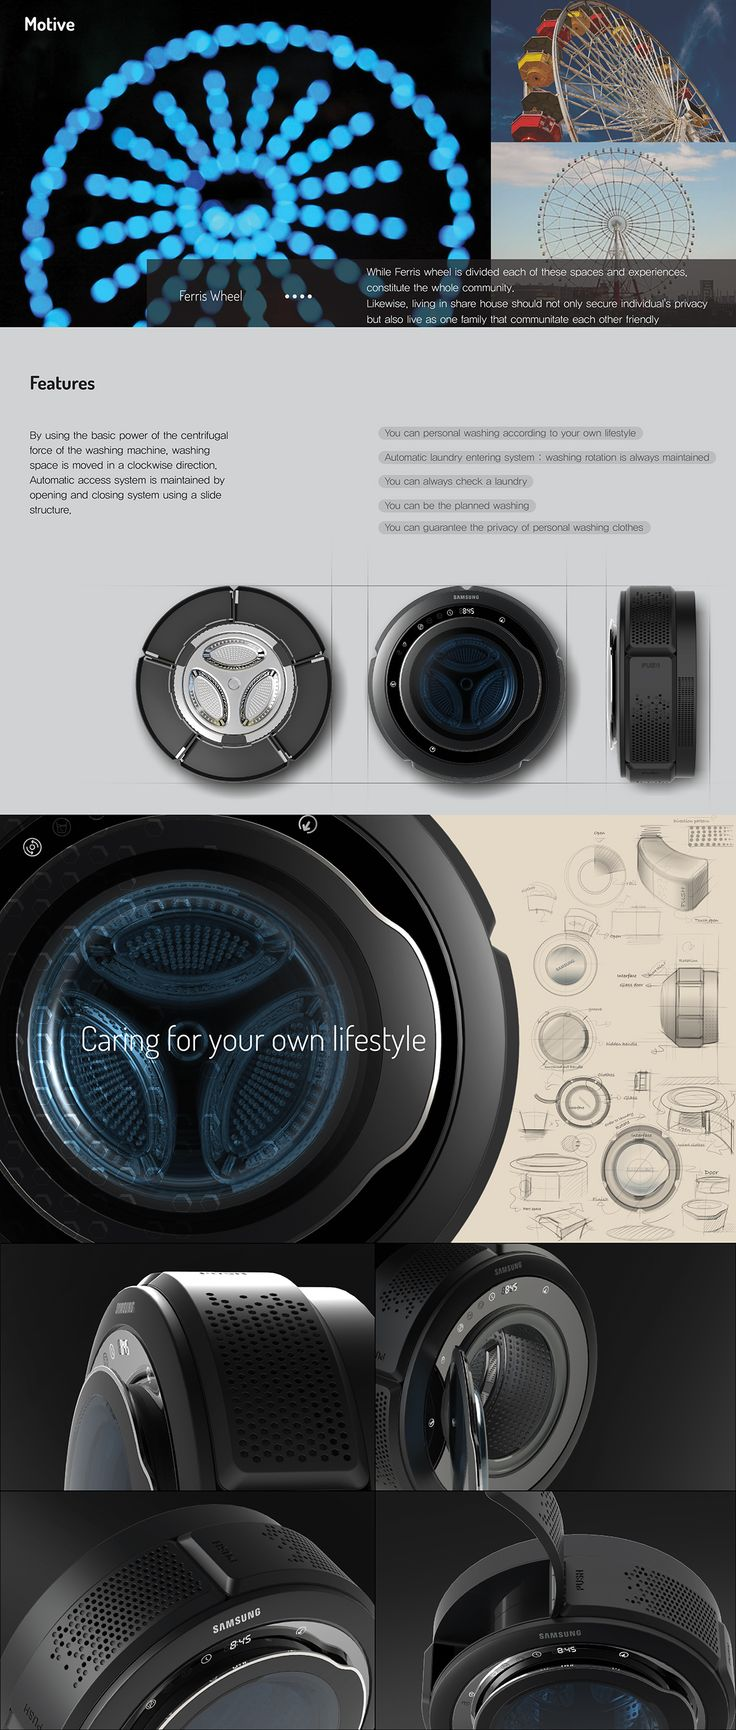 quinque : 5 Private washing machine- Samsung Electronics Washer